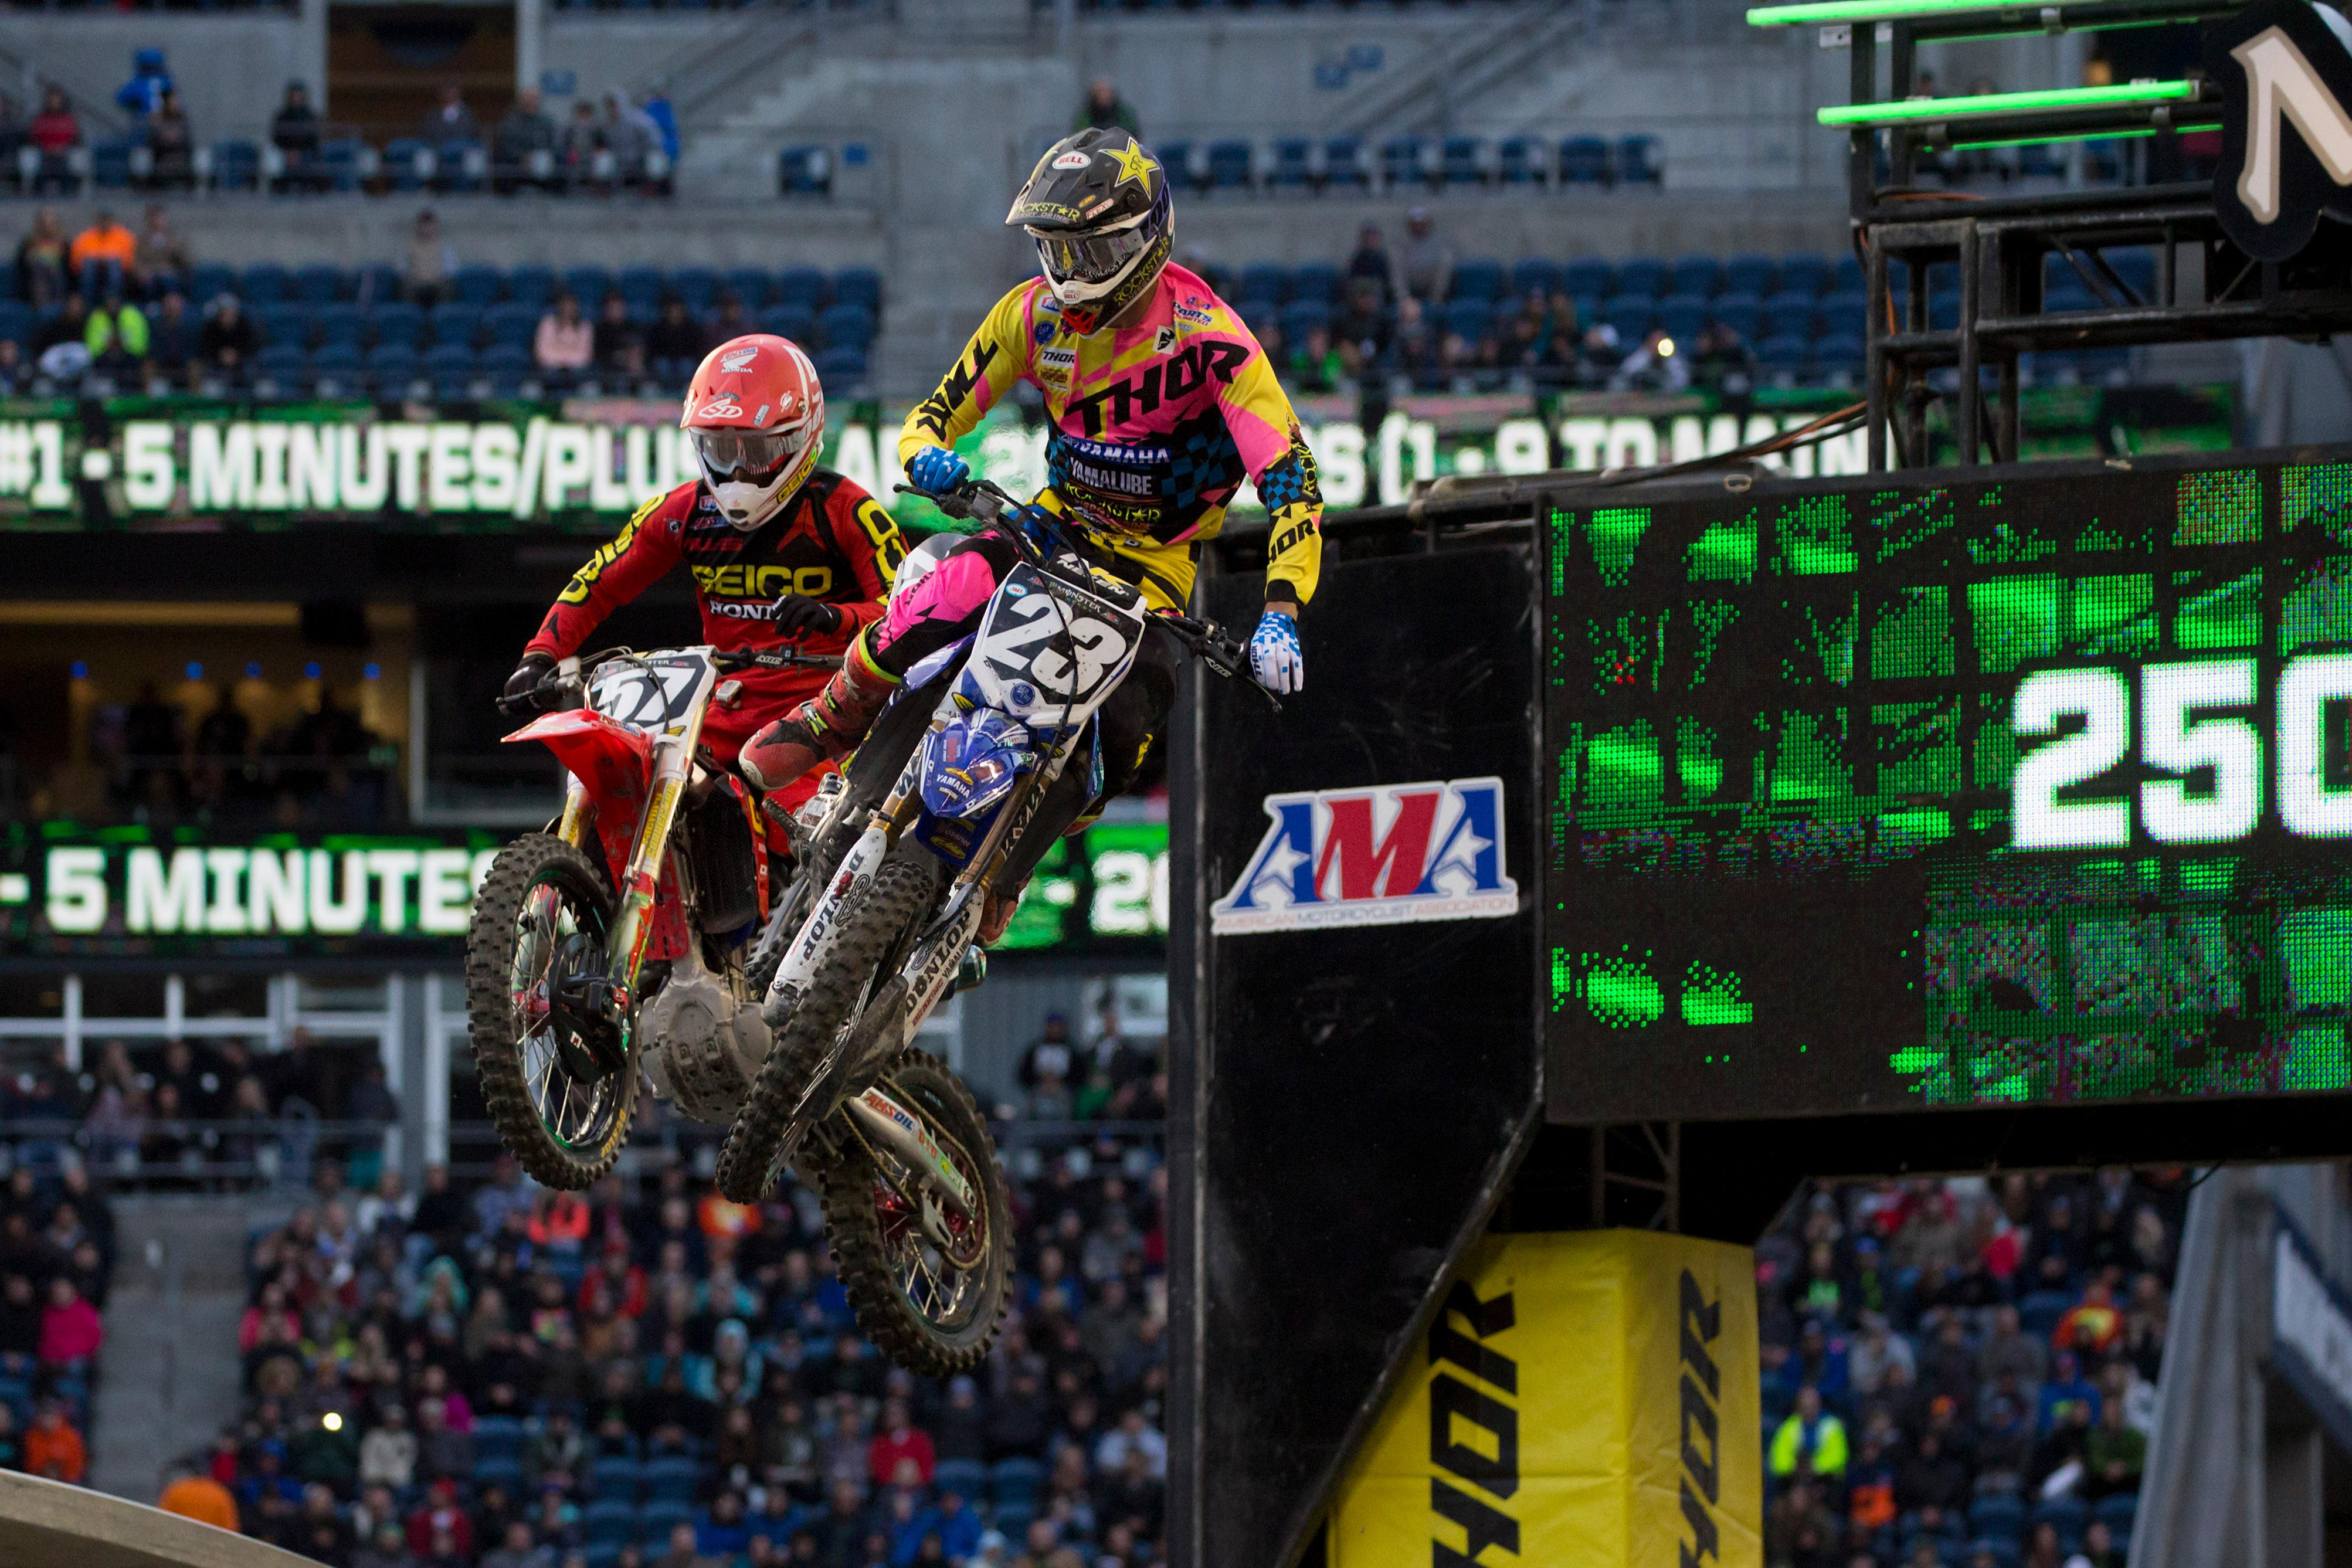 CenturyLink Field was transformed on Saturday, April 9, for Monster Energy Supercross. Hundreds packed the stadium to watch athletes do battle in a 17-race pursuit of the most coveted title in the sport. (Sy Bean / Seattle Refined)